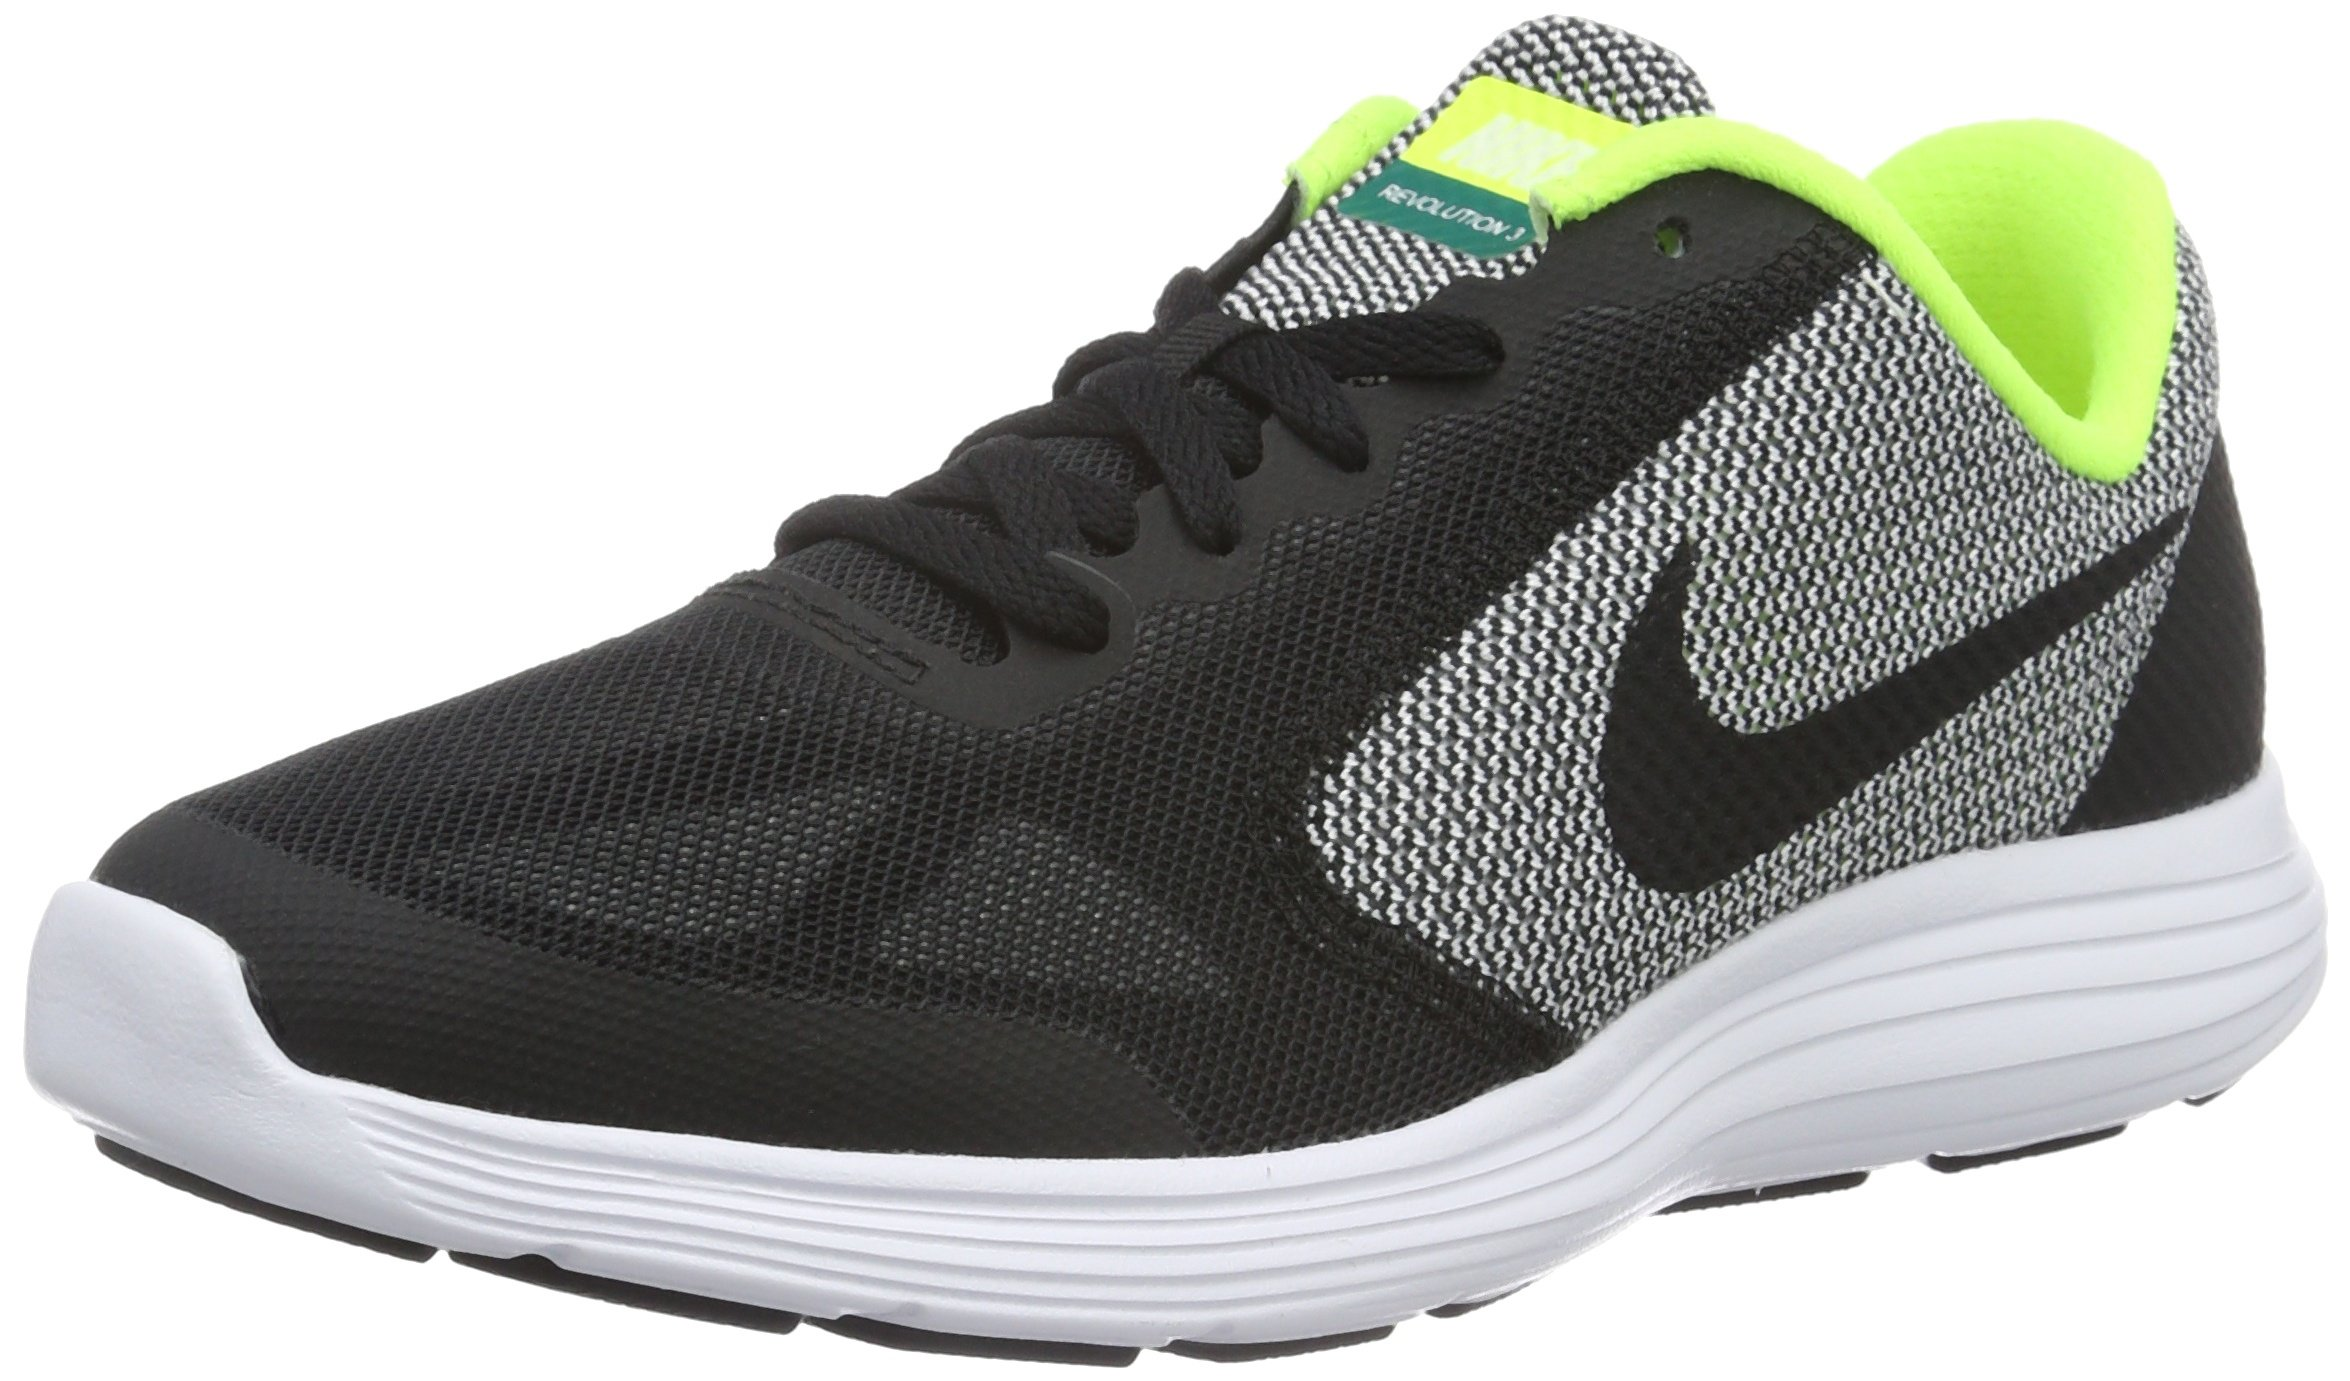 Nike Boys' Revolution 3 (GS) Running Shoe Black/White/Volt, 4.5 M US Big Kid